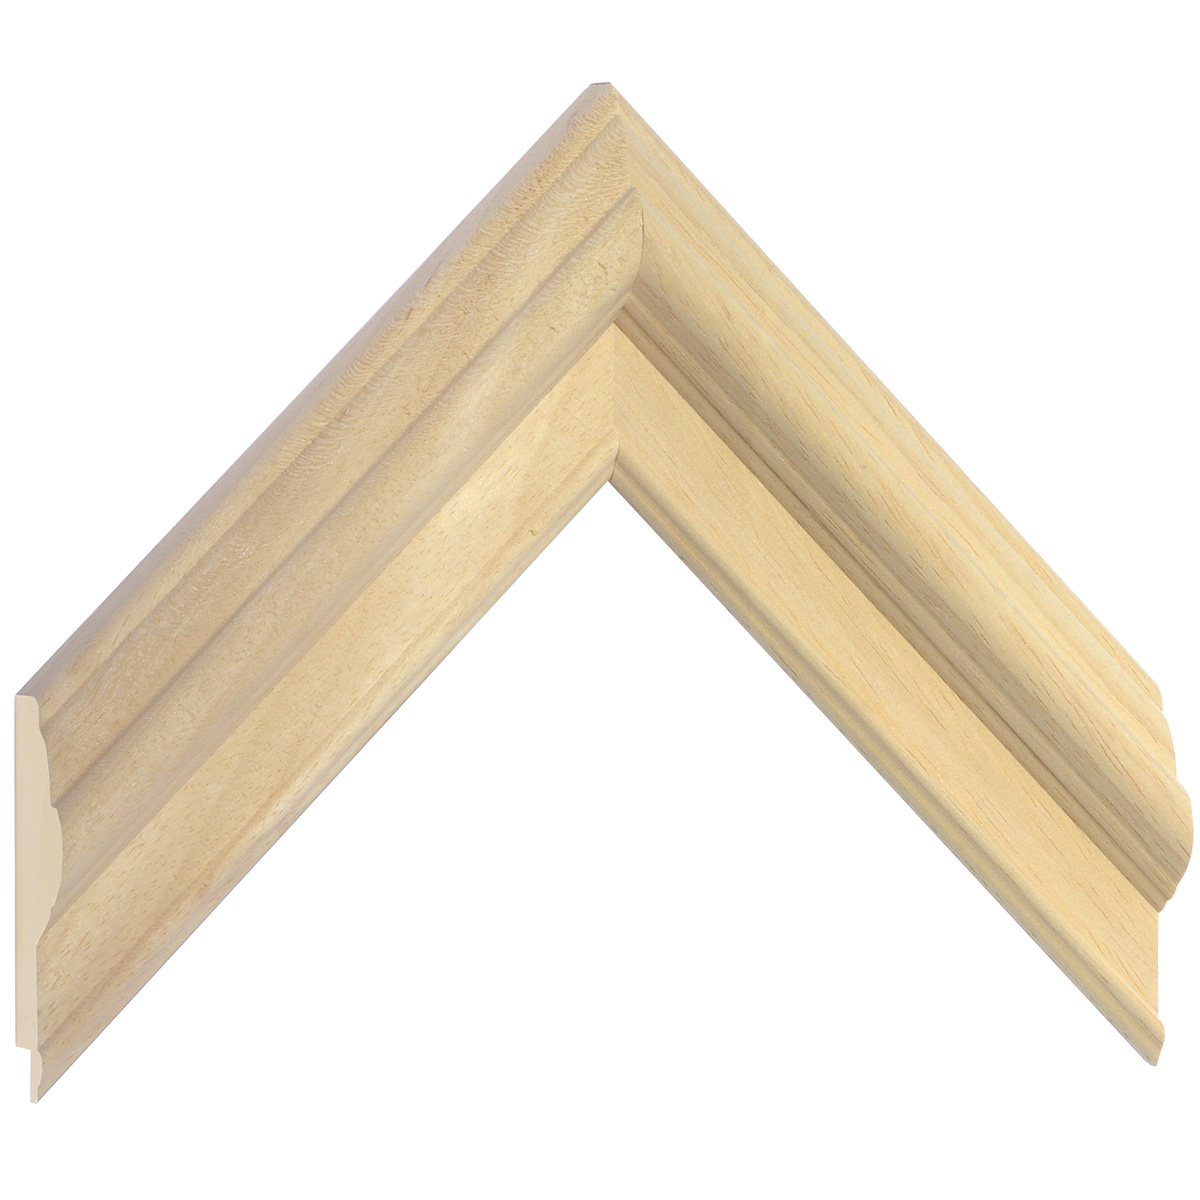 Moulding ayous, width 50mm, height 25mm, bare timber